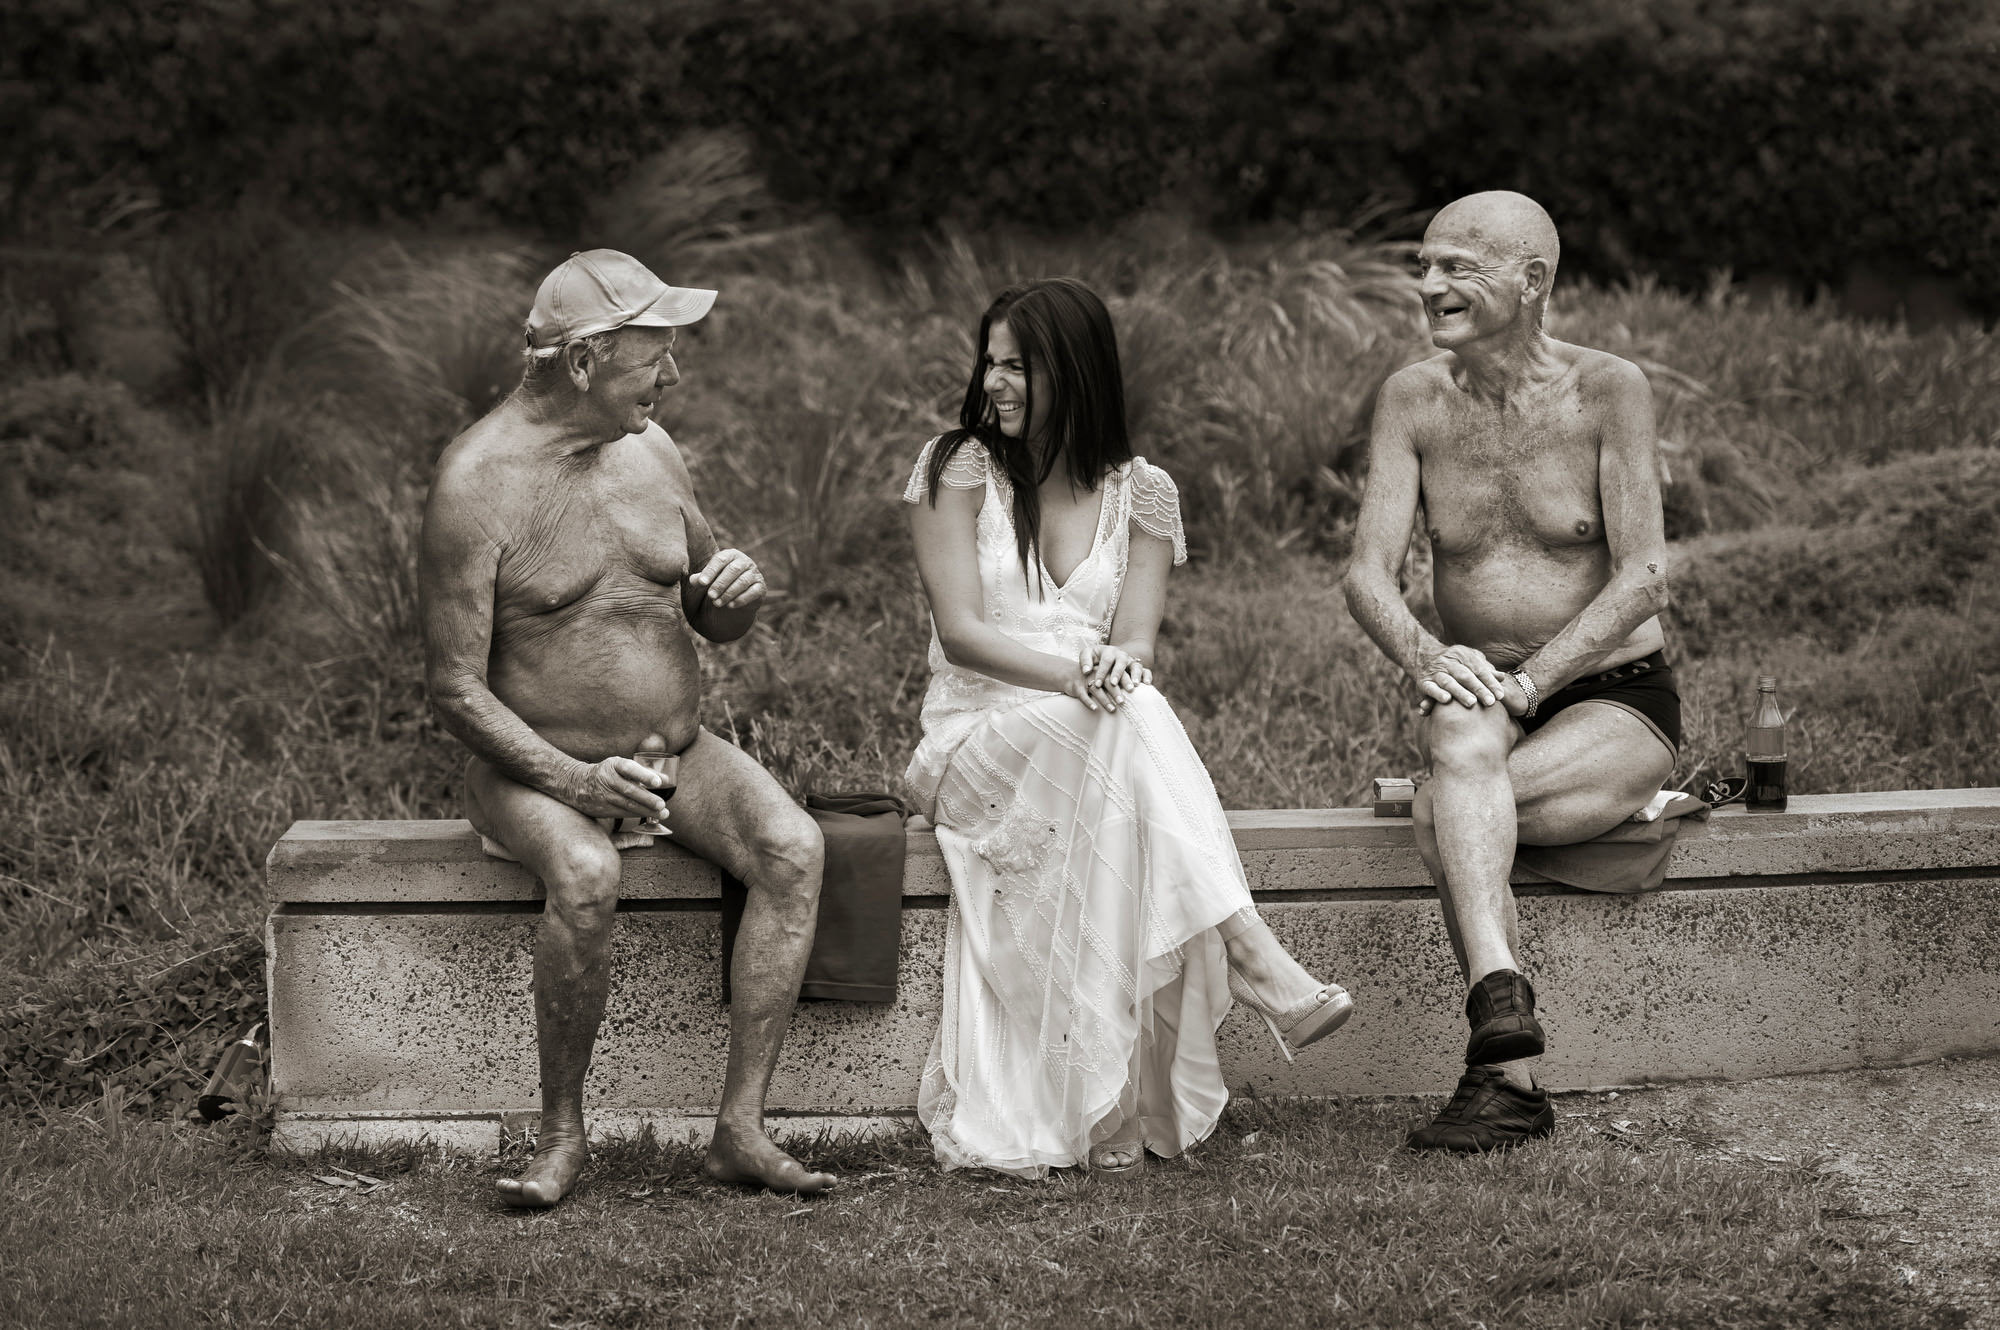 Funny old men in swim wear with bride photo by Jerry Ghionis